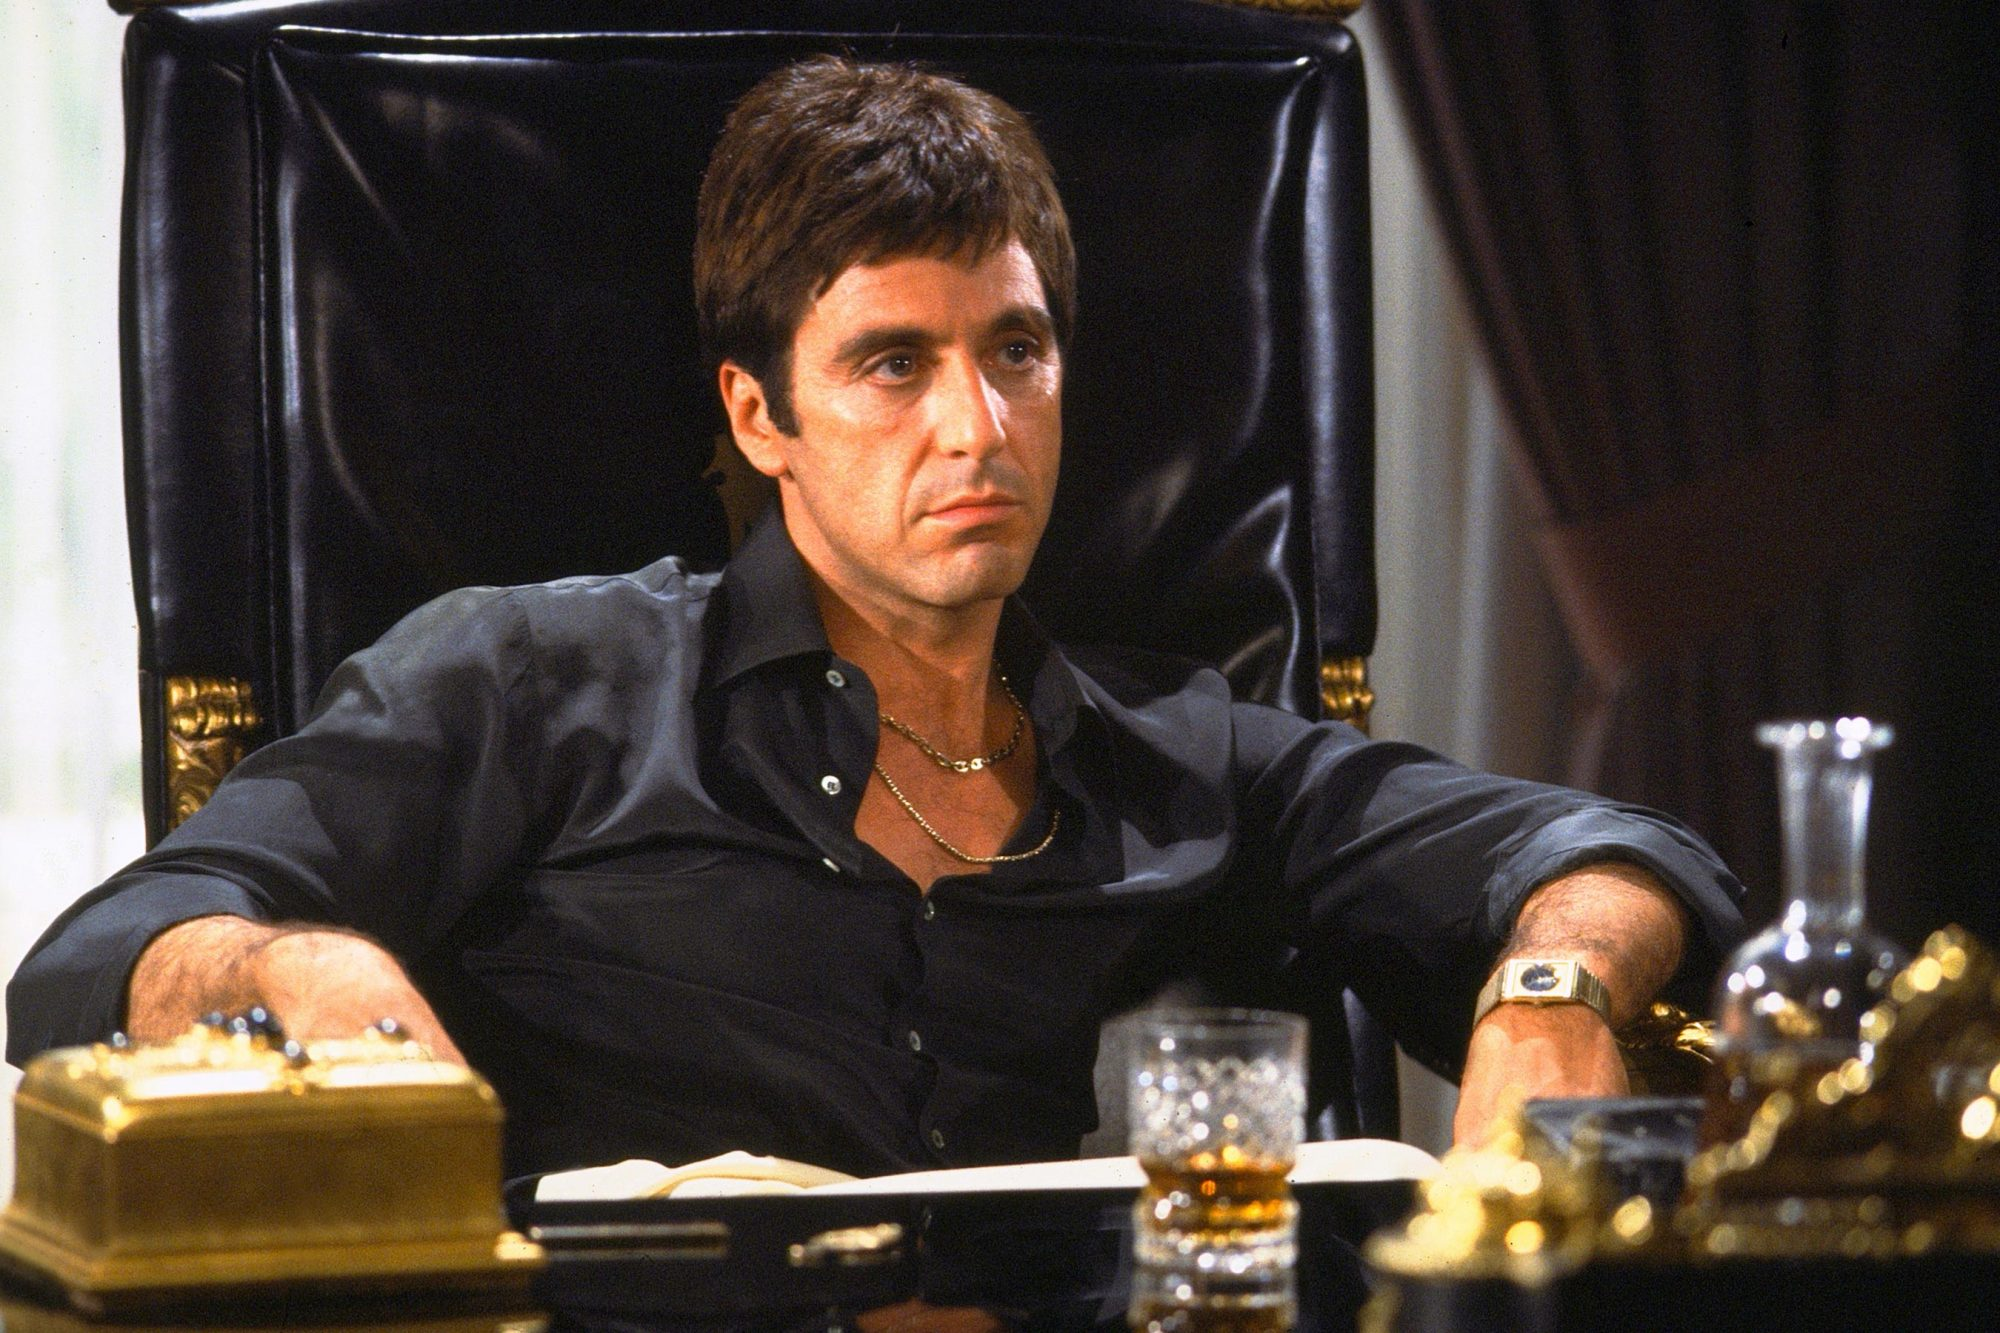 SCARFACE, Al Pacino, 1983, (c) Universal/courtesy Everett Collection